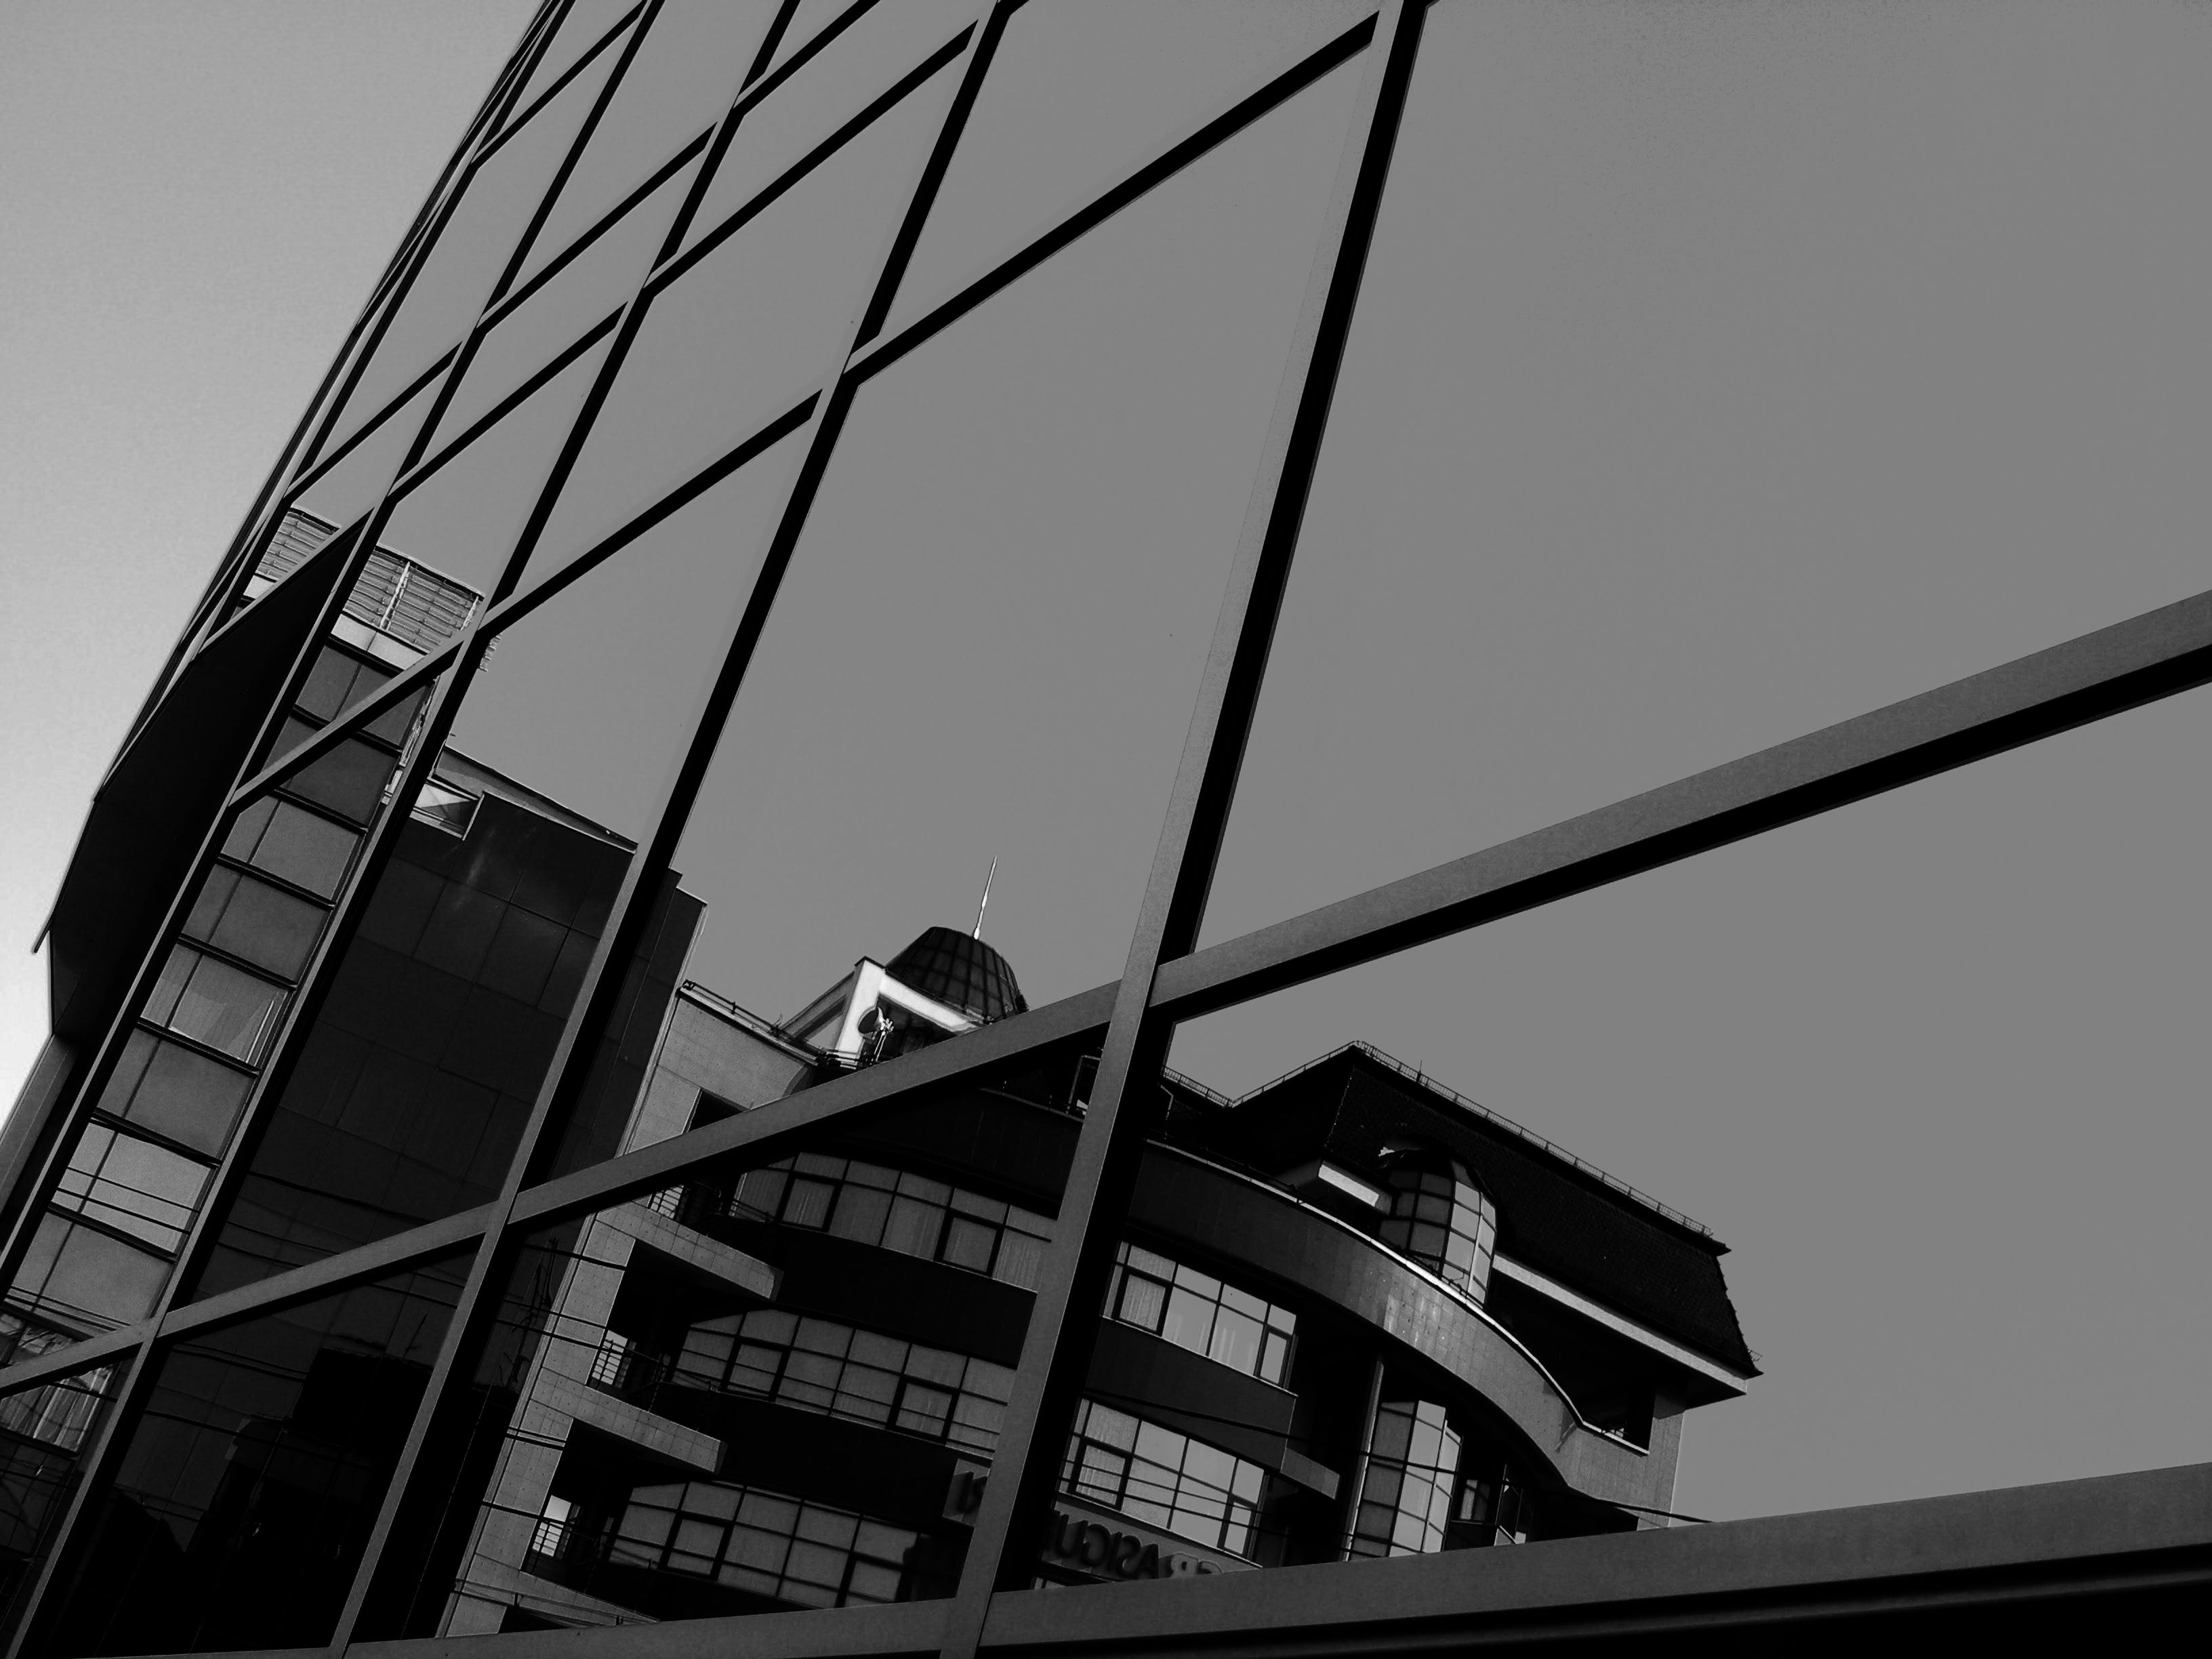 Grayscale Photo Of Glass Curtain Building